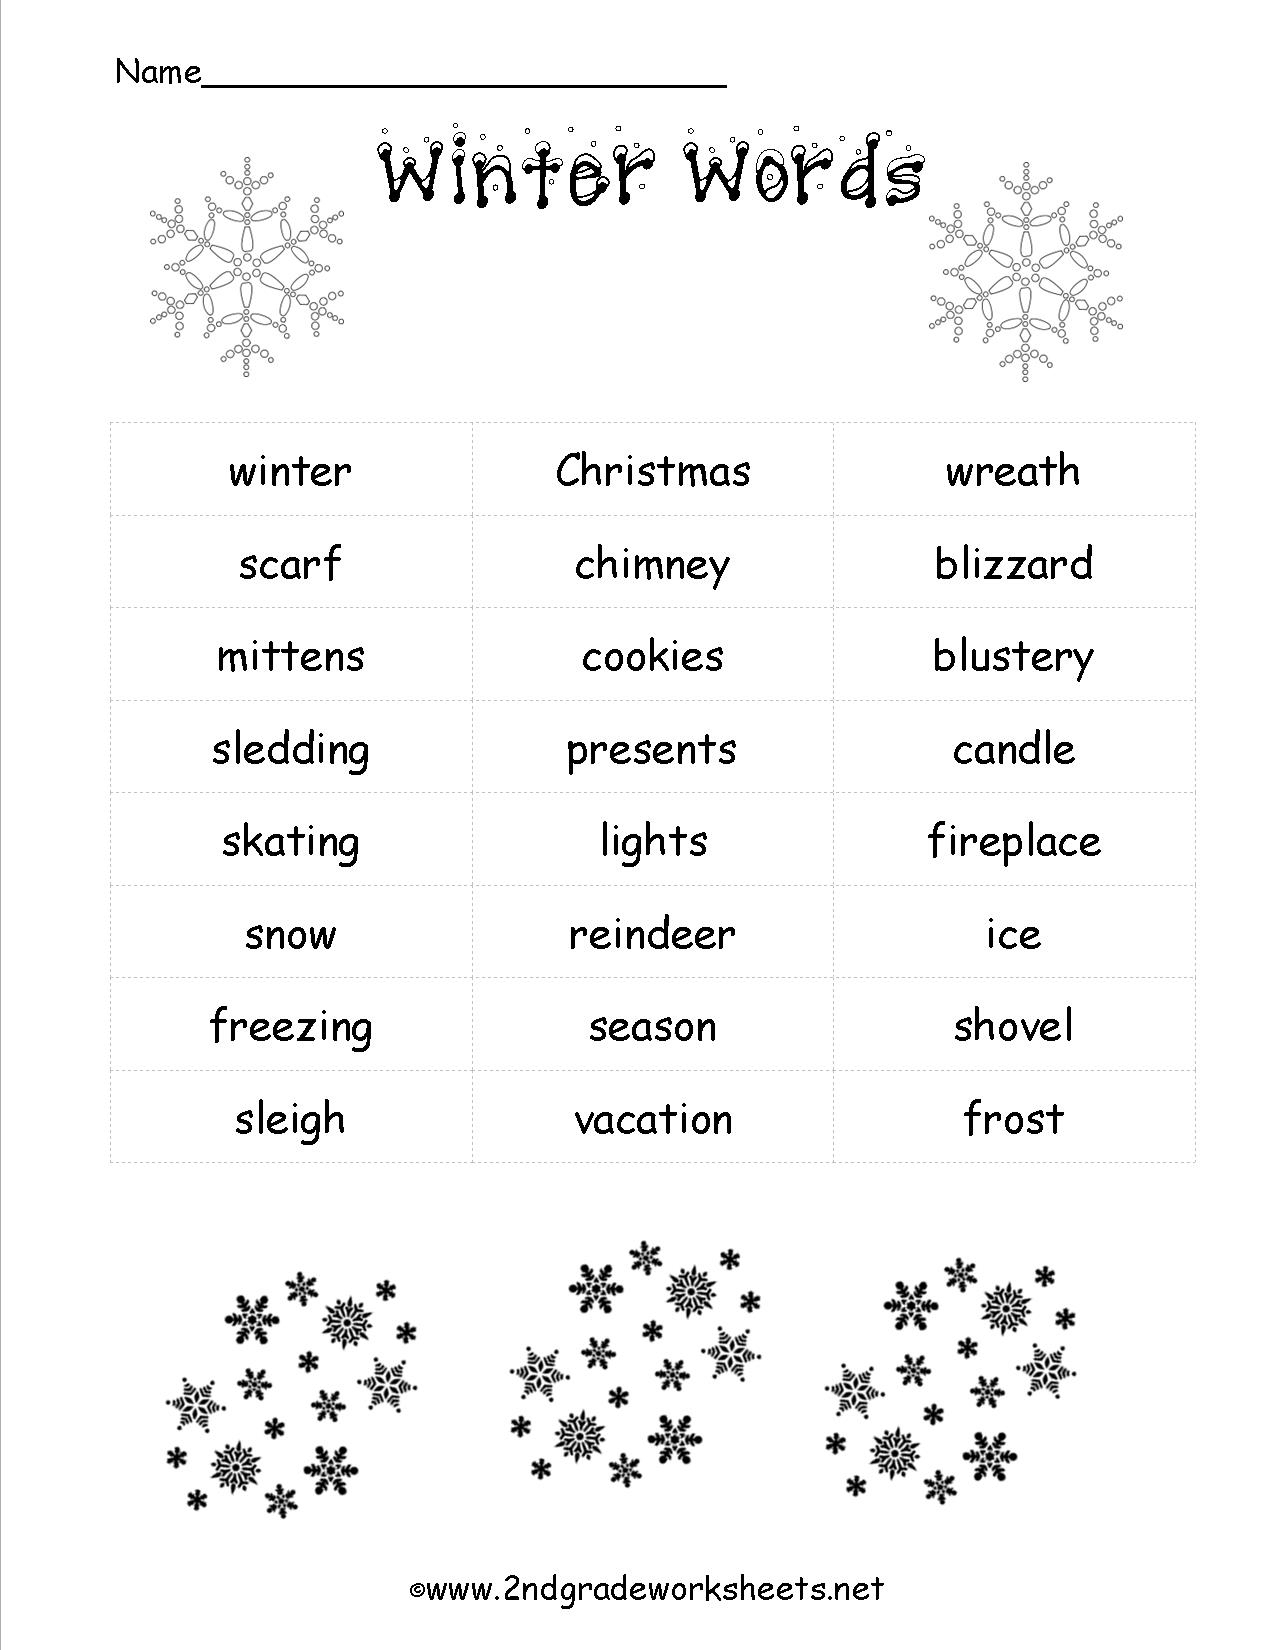 Christmas Worksheets And Printouts | Free Printable Christmas Worksheets